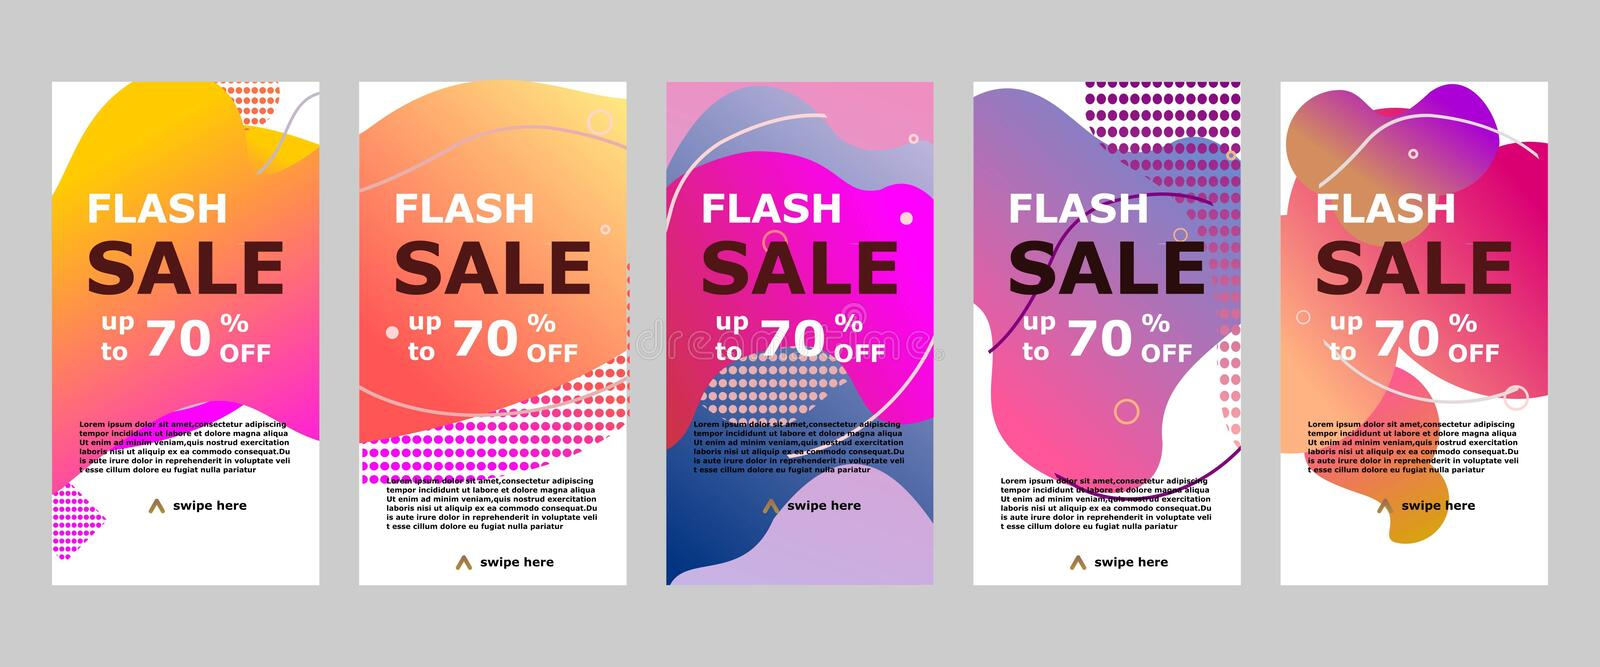 Flash sale banner mobile app and instagram royalty free stock photo